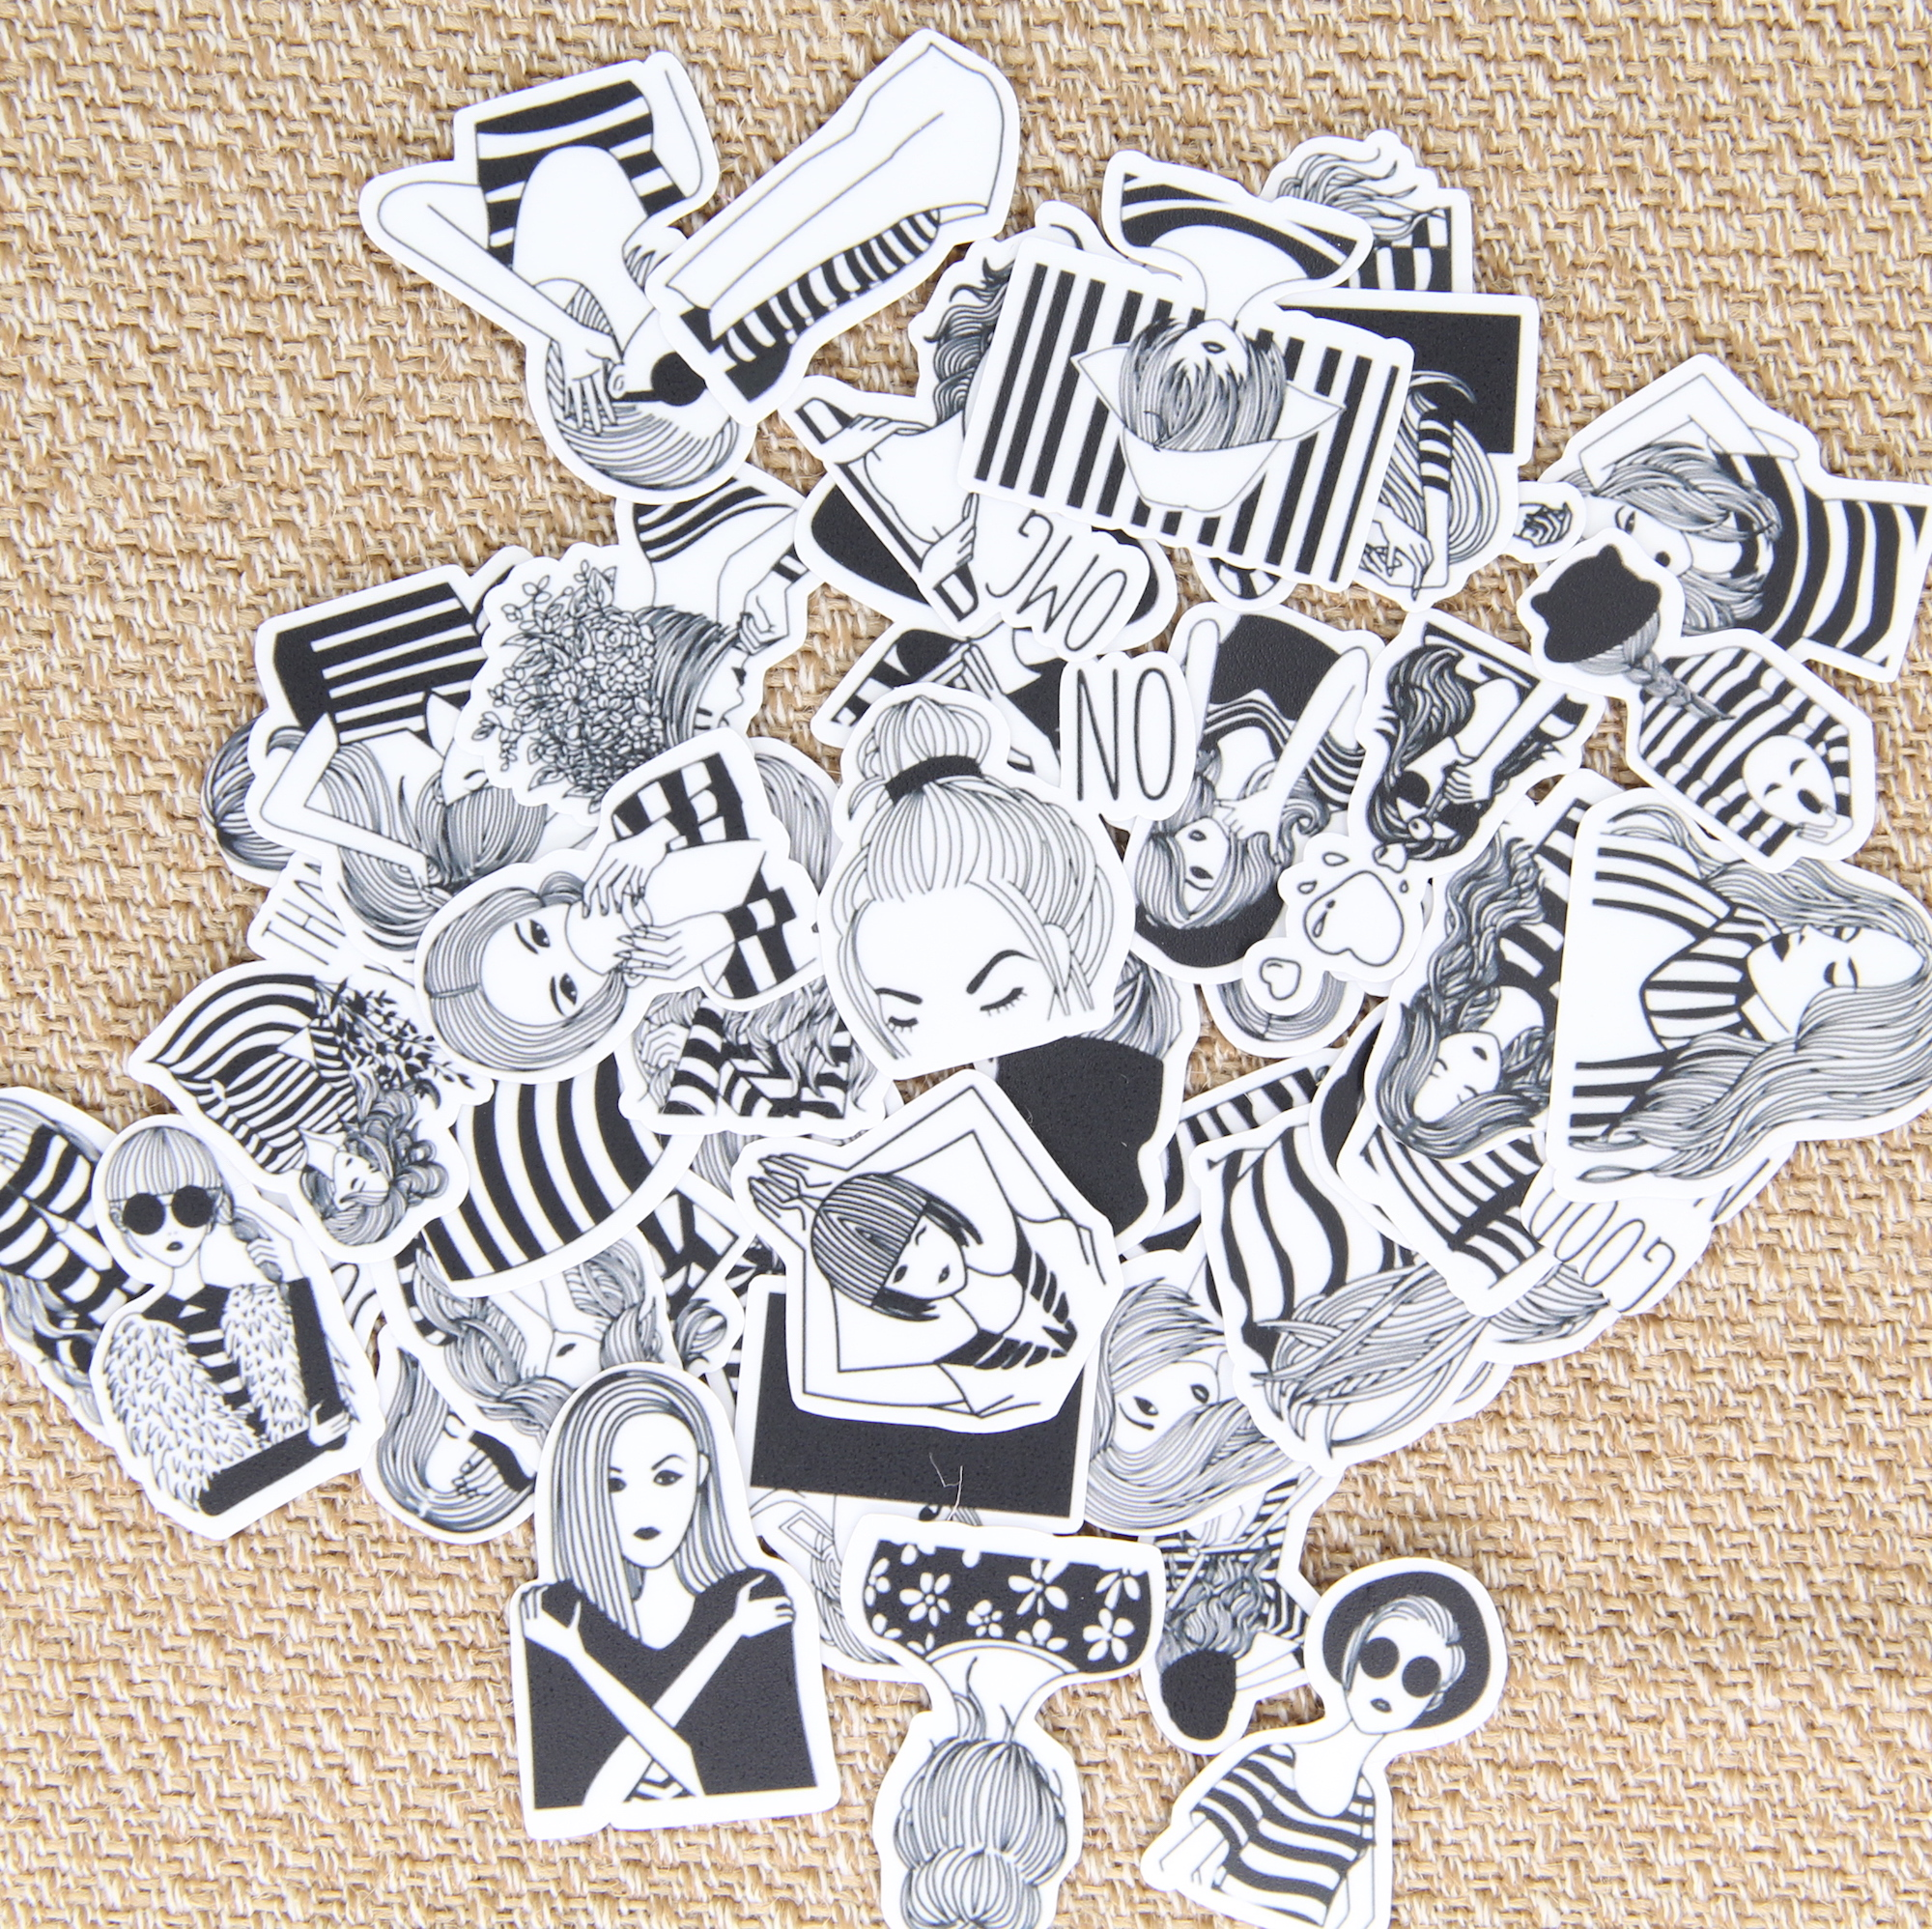 40pcs Self-made Black White Cool Women Lady Scrapbooking Stickers Decorative Sticker DIY ...